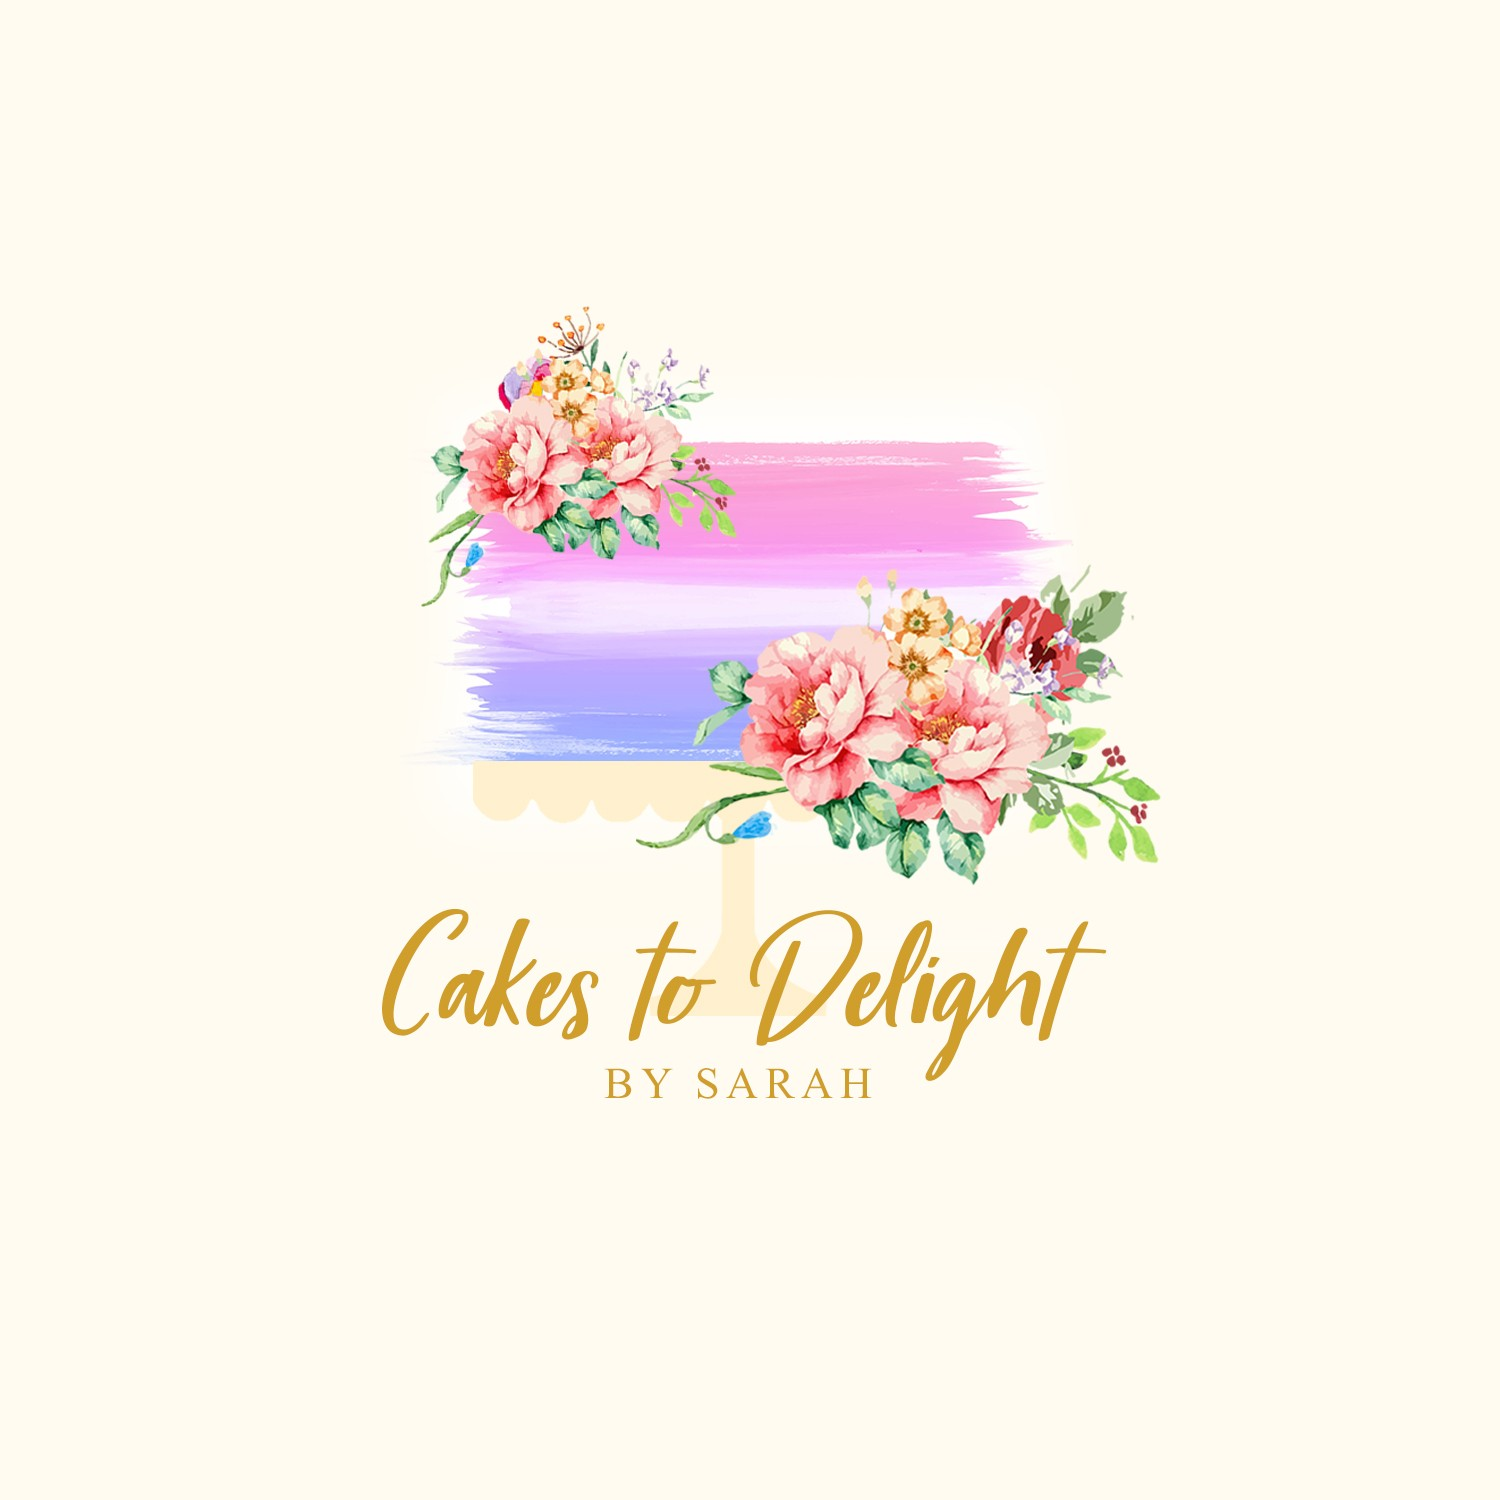 Cakes to Delight by Sarah